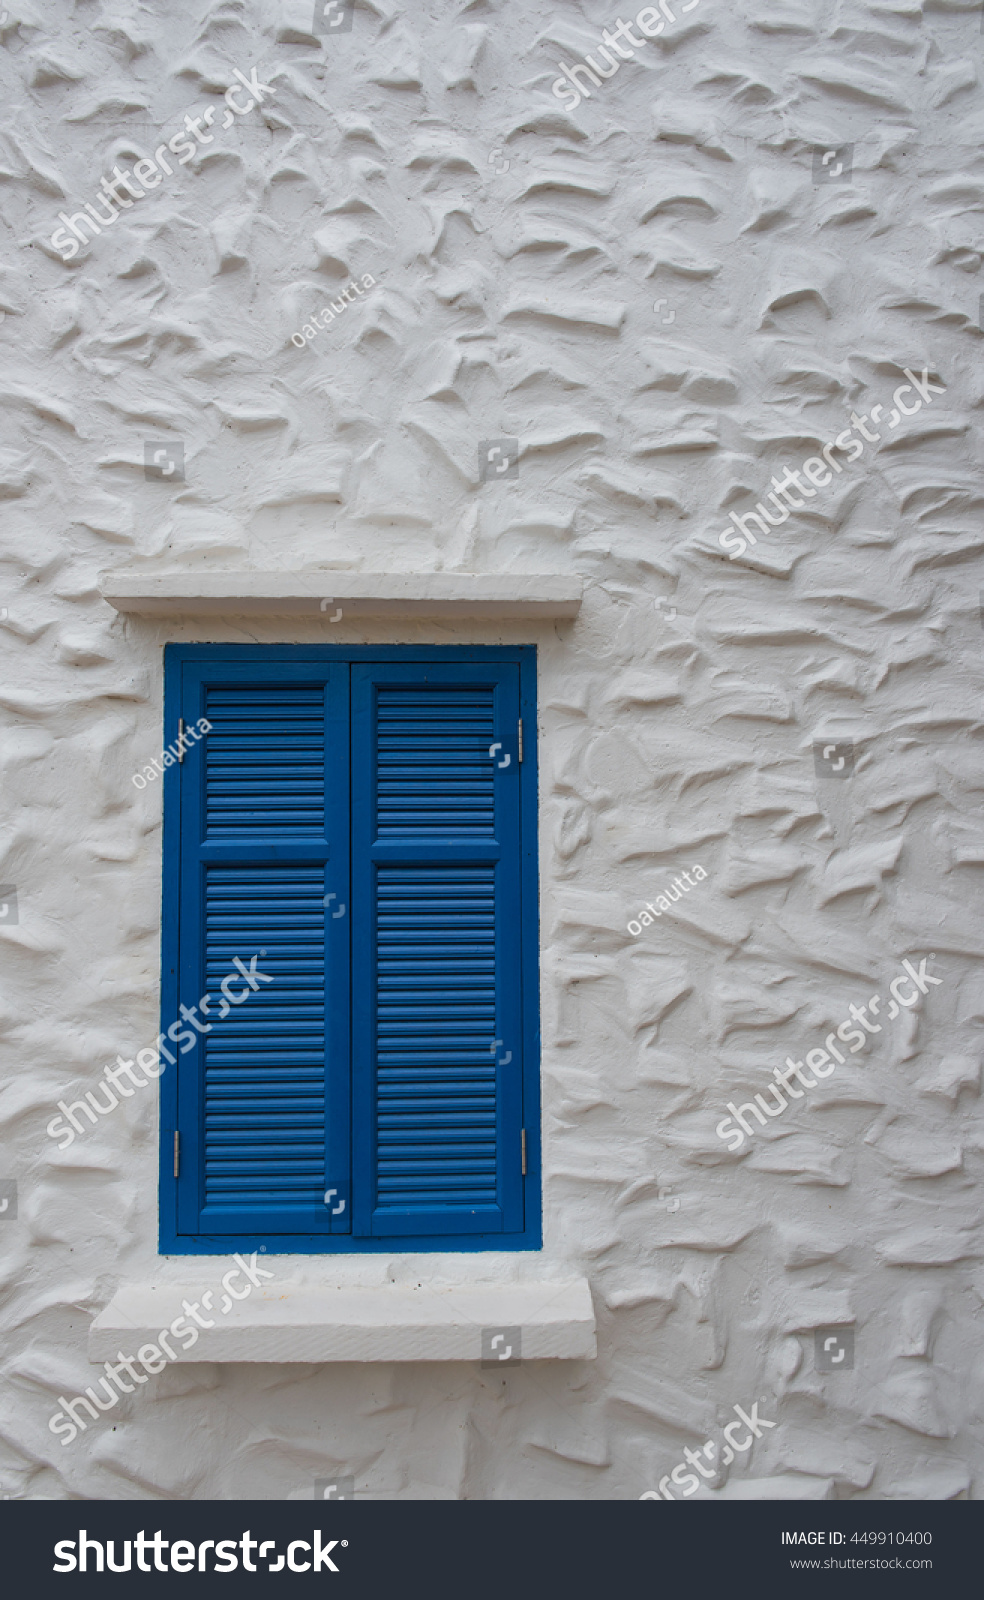 Stucco On Frame : Blue wooden window frame on building stock photo